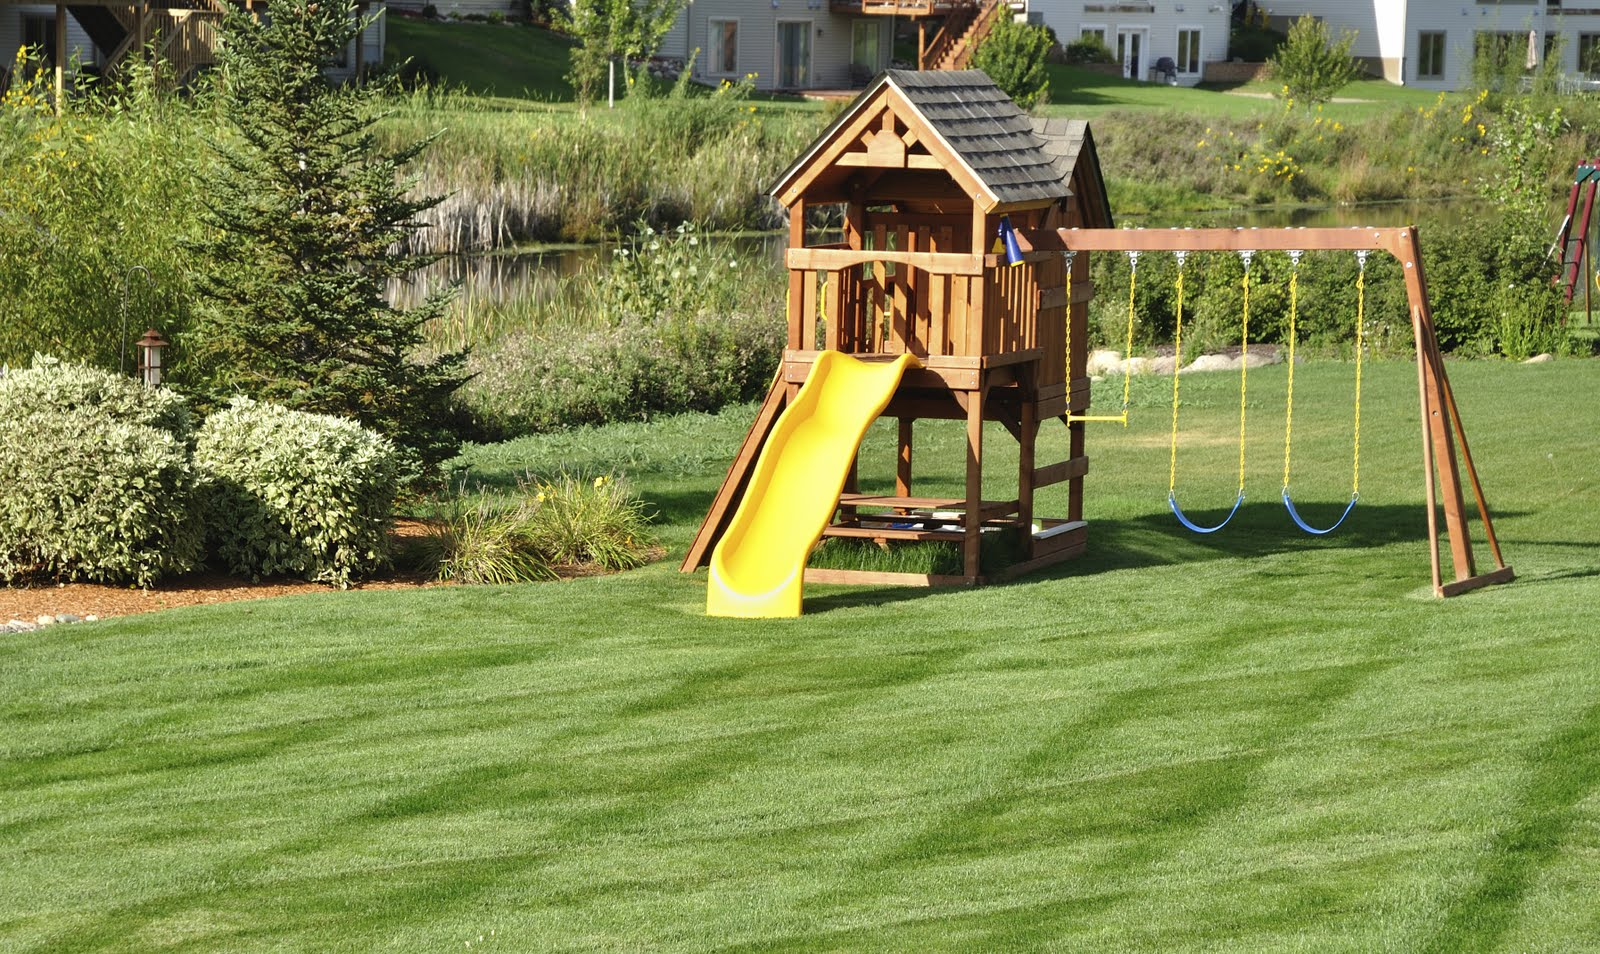 Backyard Playground Diy : Safety in backyard playgrounds is obviously just as necessary as at